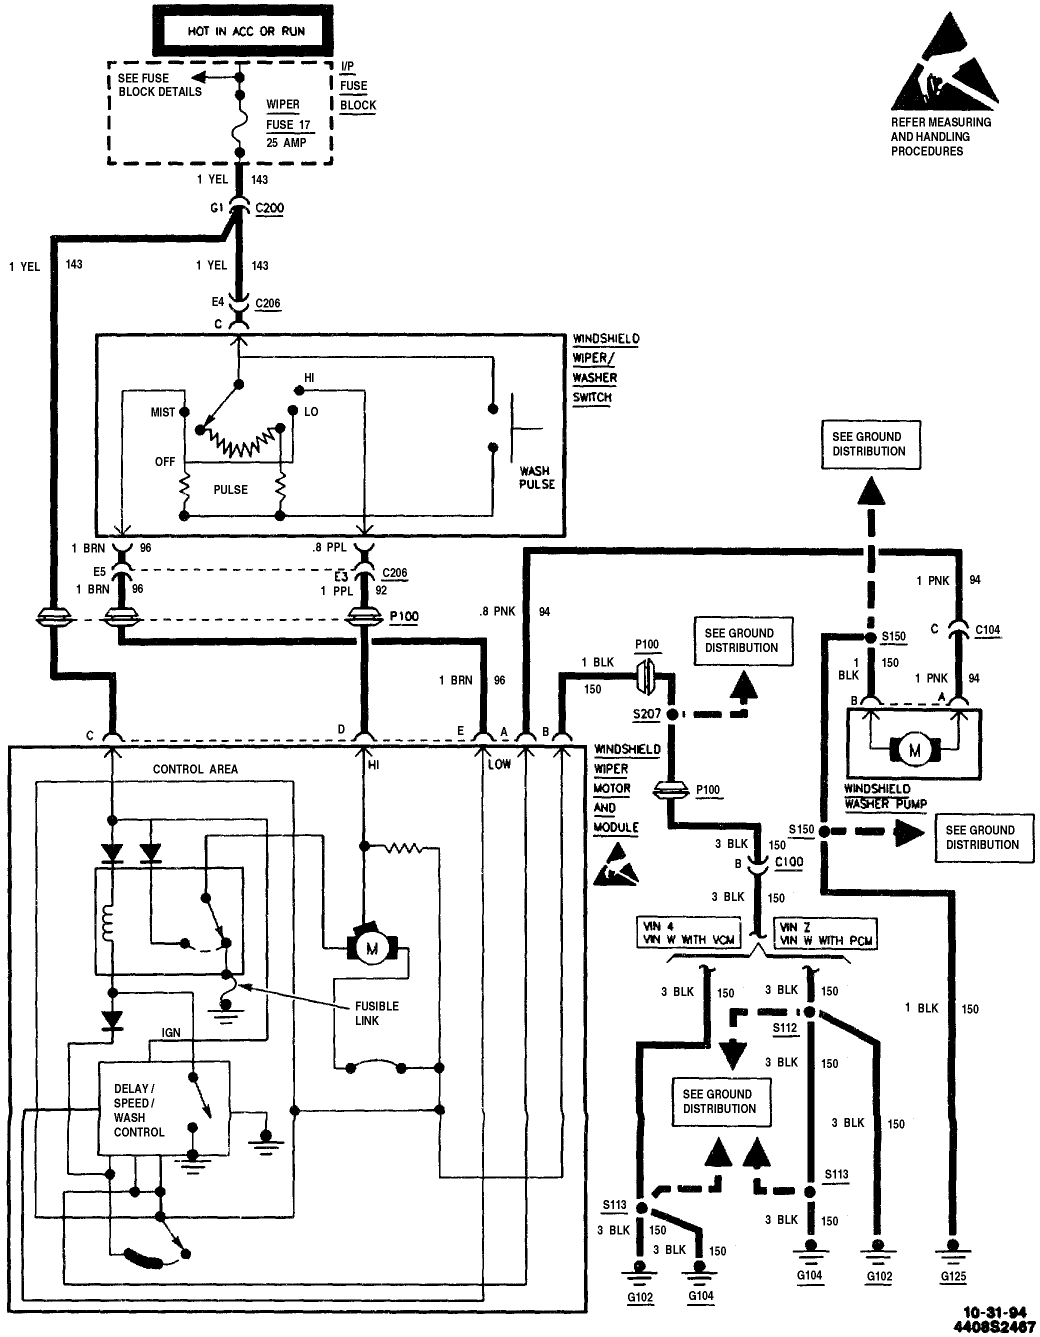 wiper motor wiring diagram  i need to know the schematic